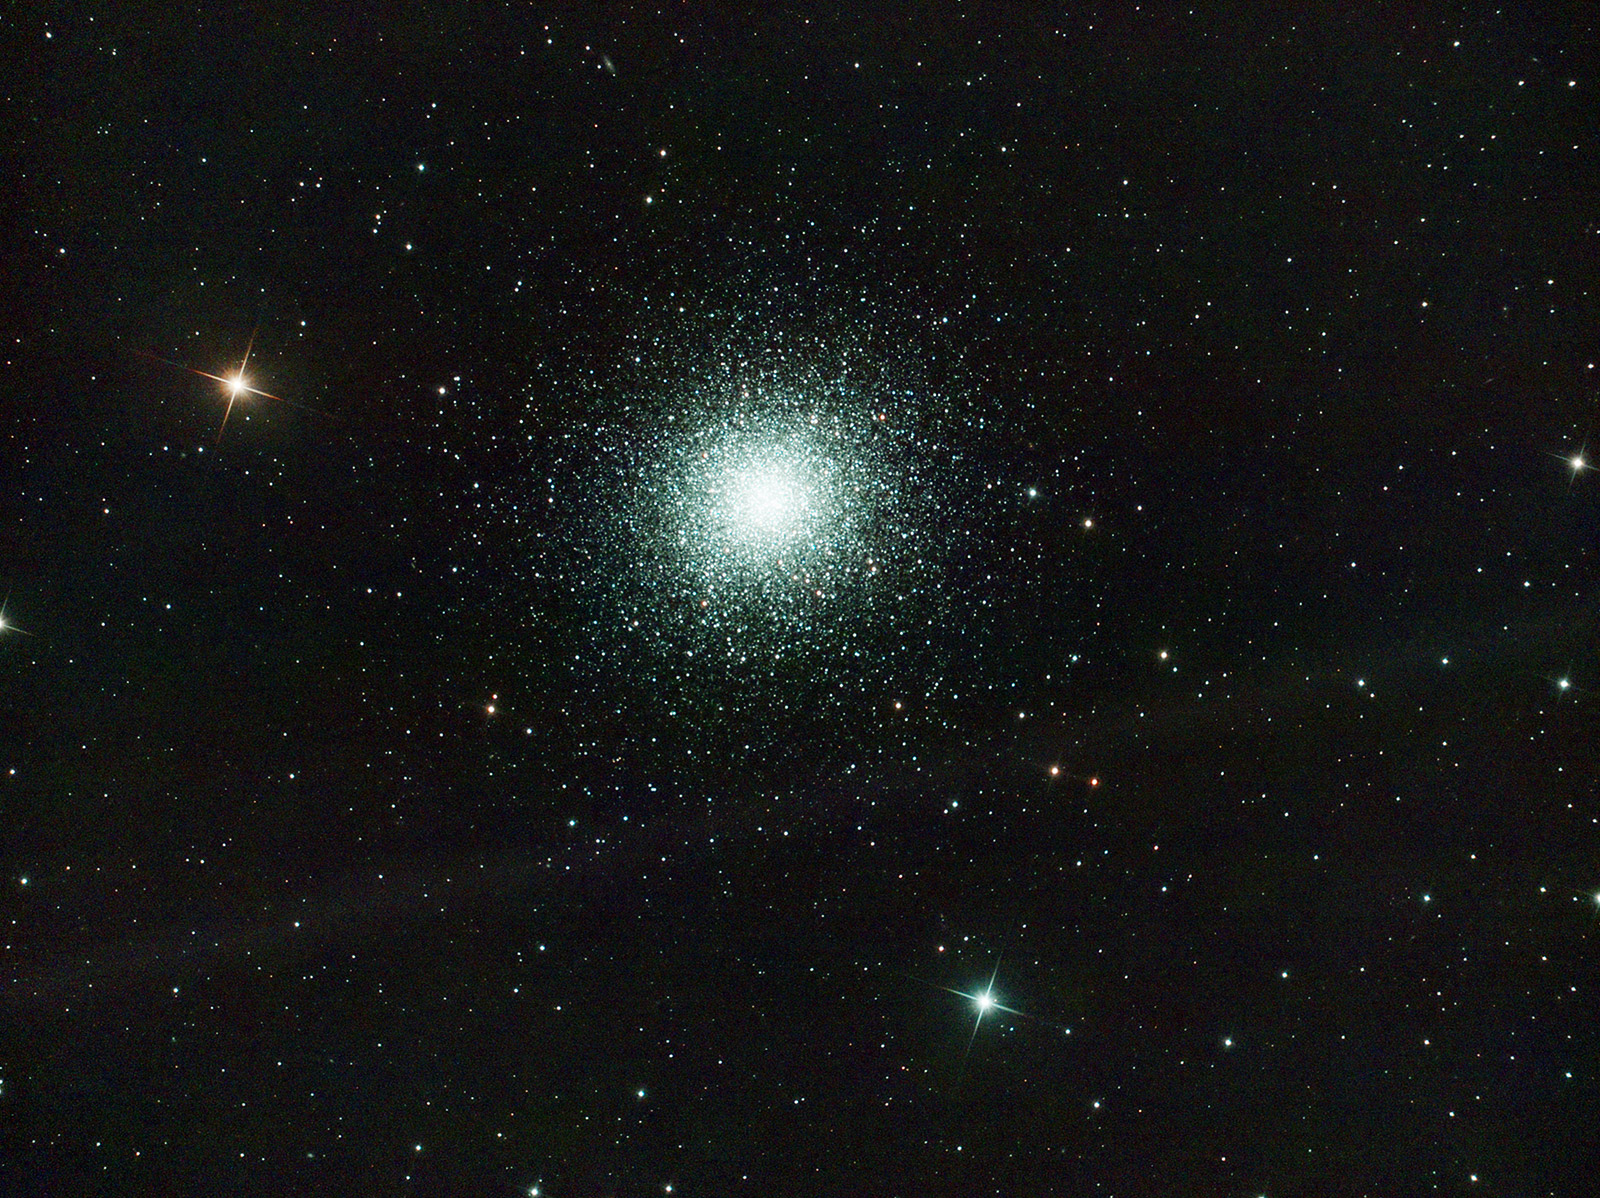 Globular cluster M13 in Hercules. Imaged from Kendal